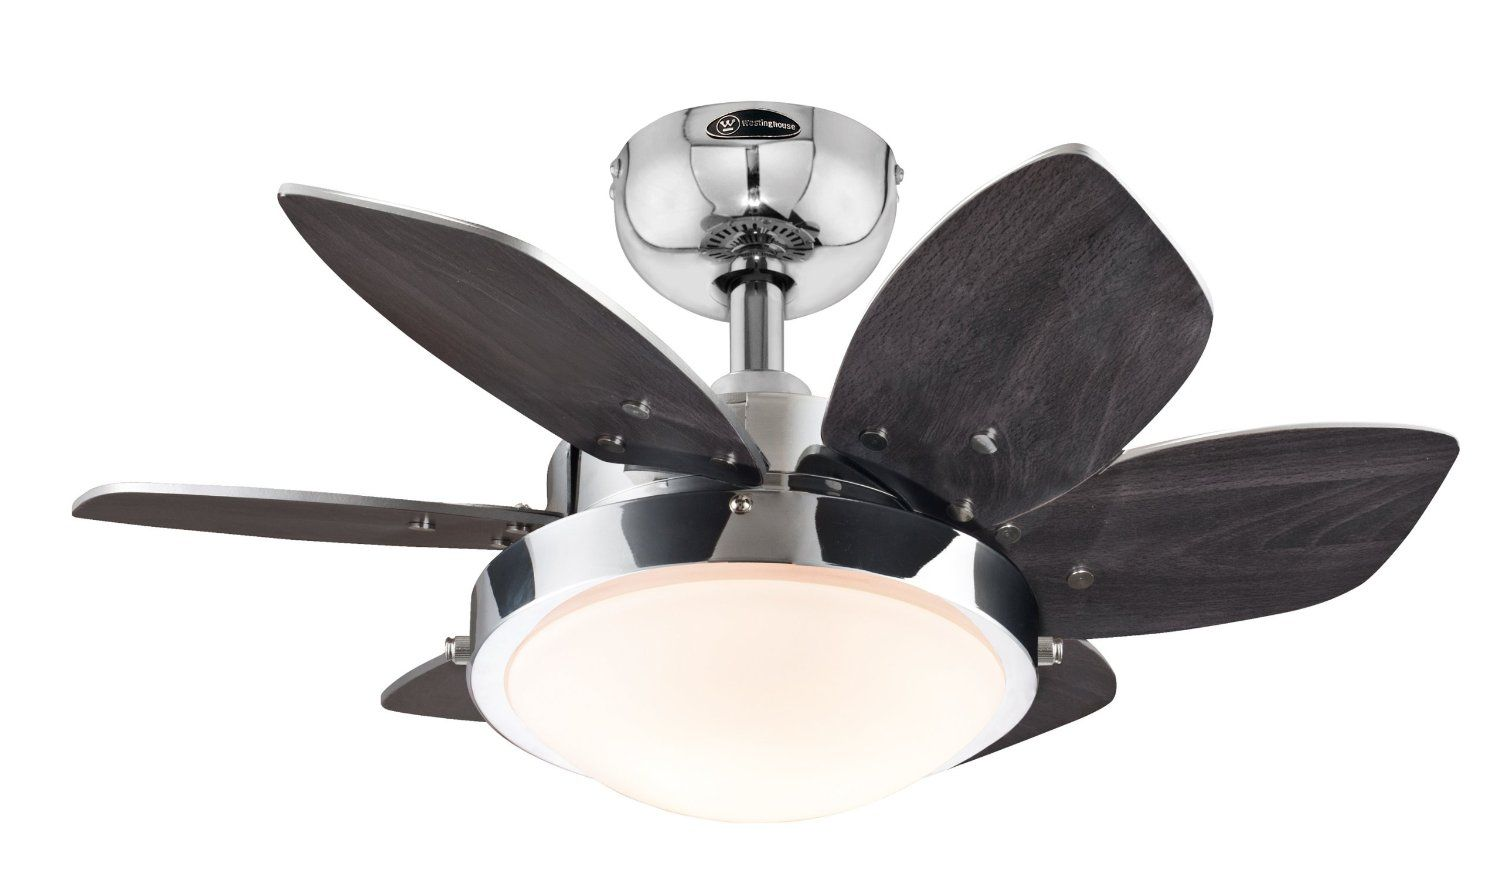 Westinghouse 7863100 Quince Two Light 24 Inch Reversible Six Blade Indoor Ceiling Fan Chrome With Op Ventilator Mit Licht Led Aussenleuchten Gartenstrahler Led